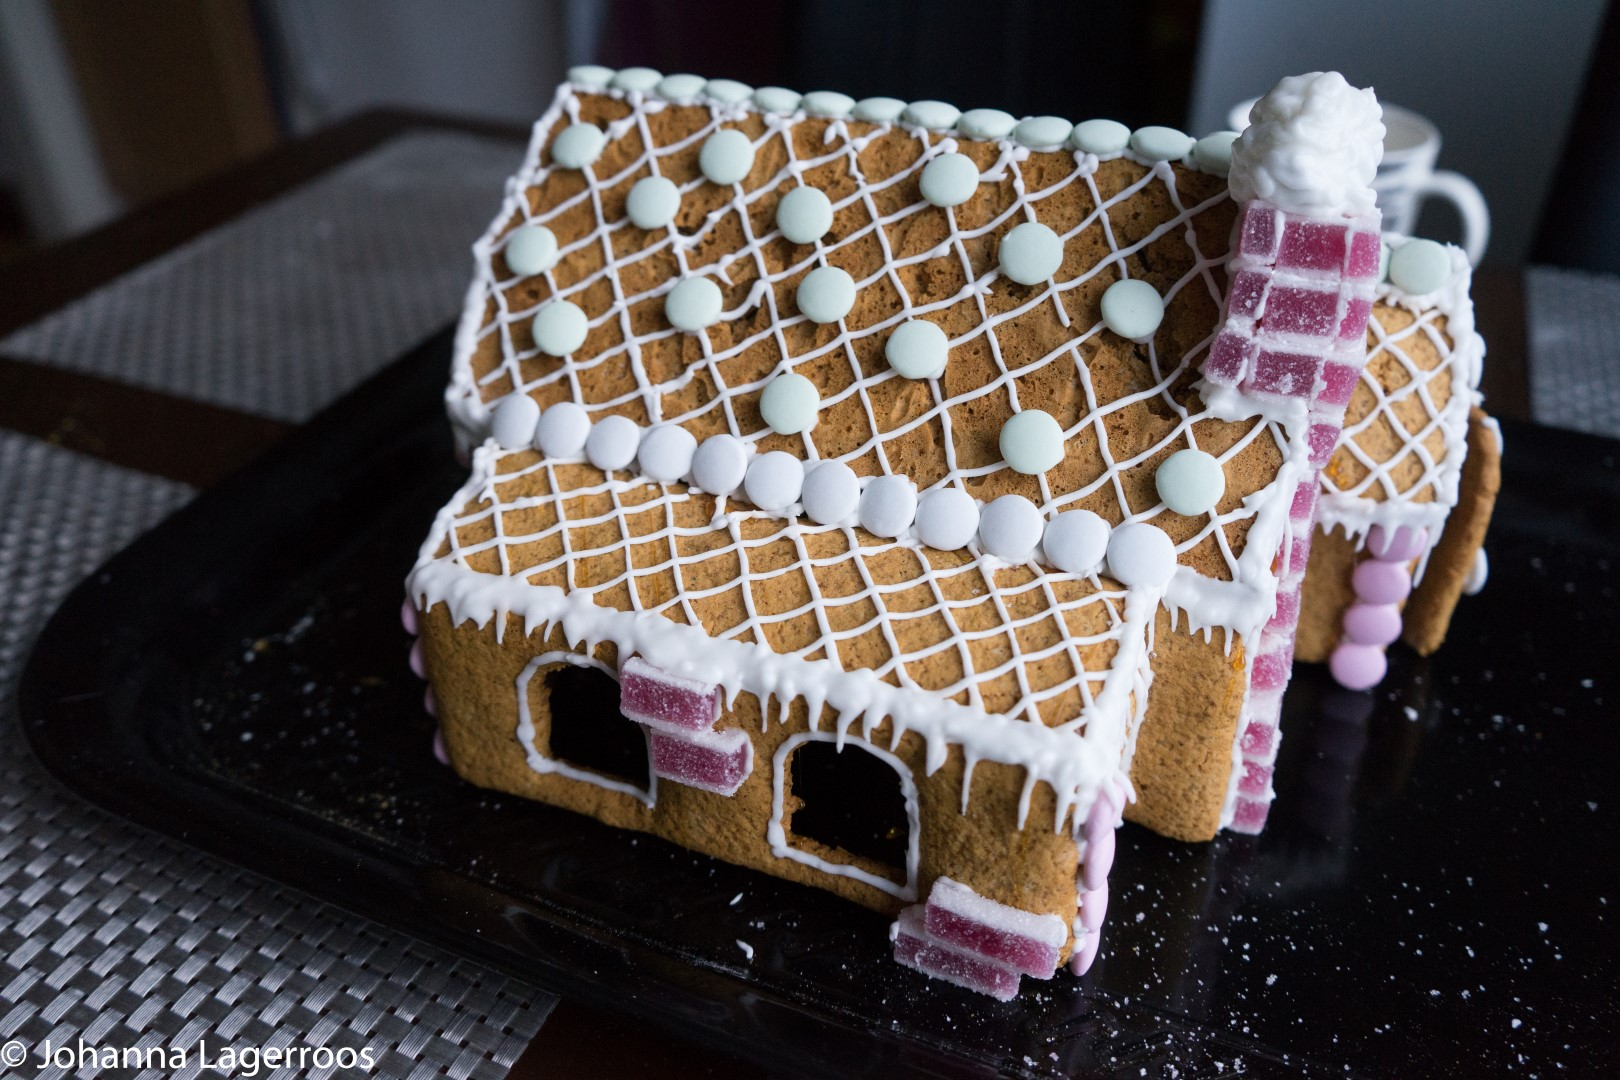 glutenfree gingerbread house